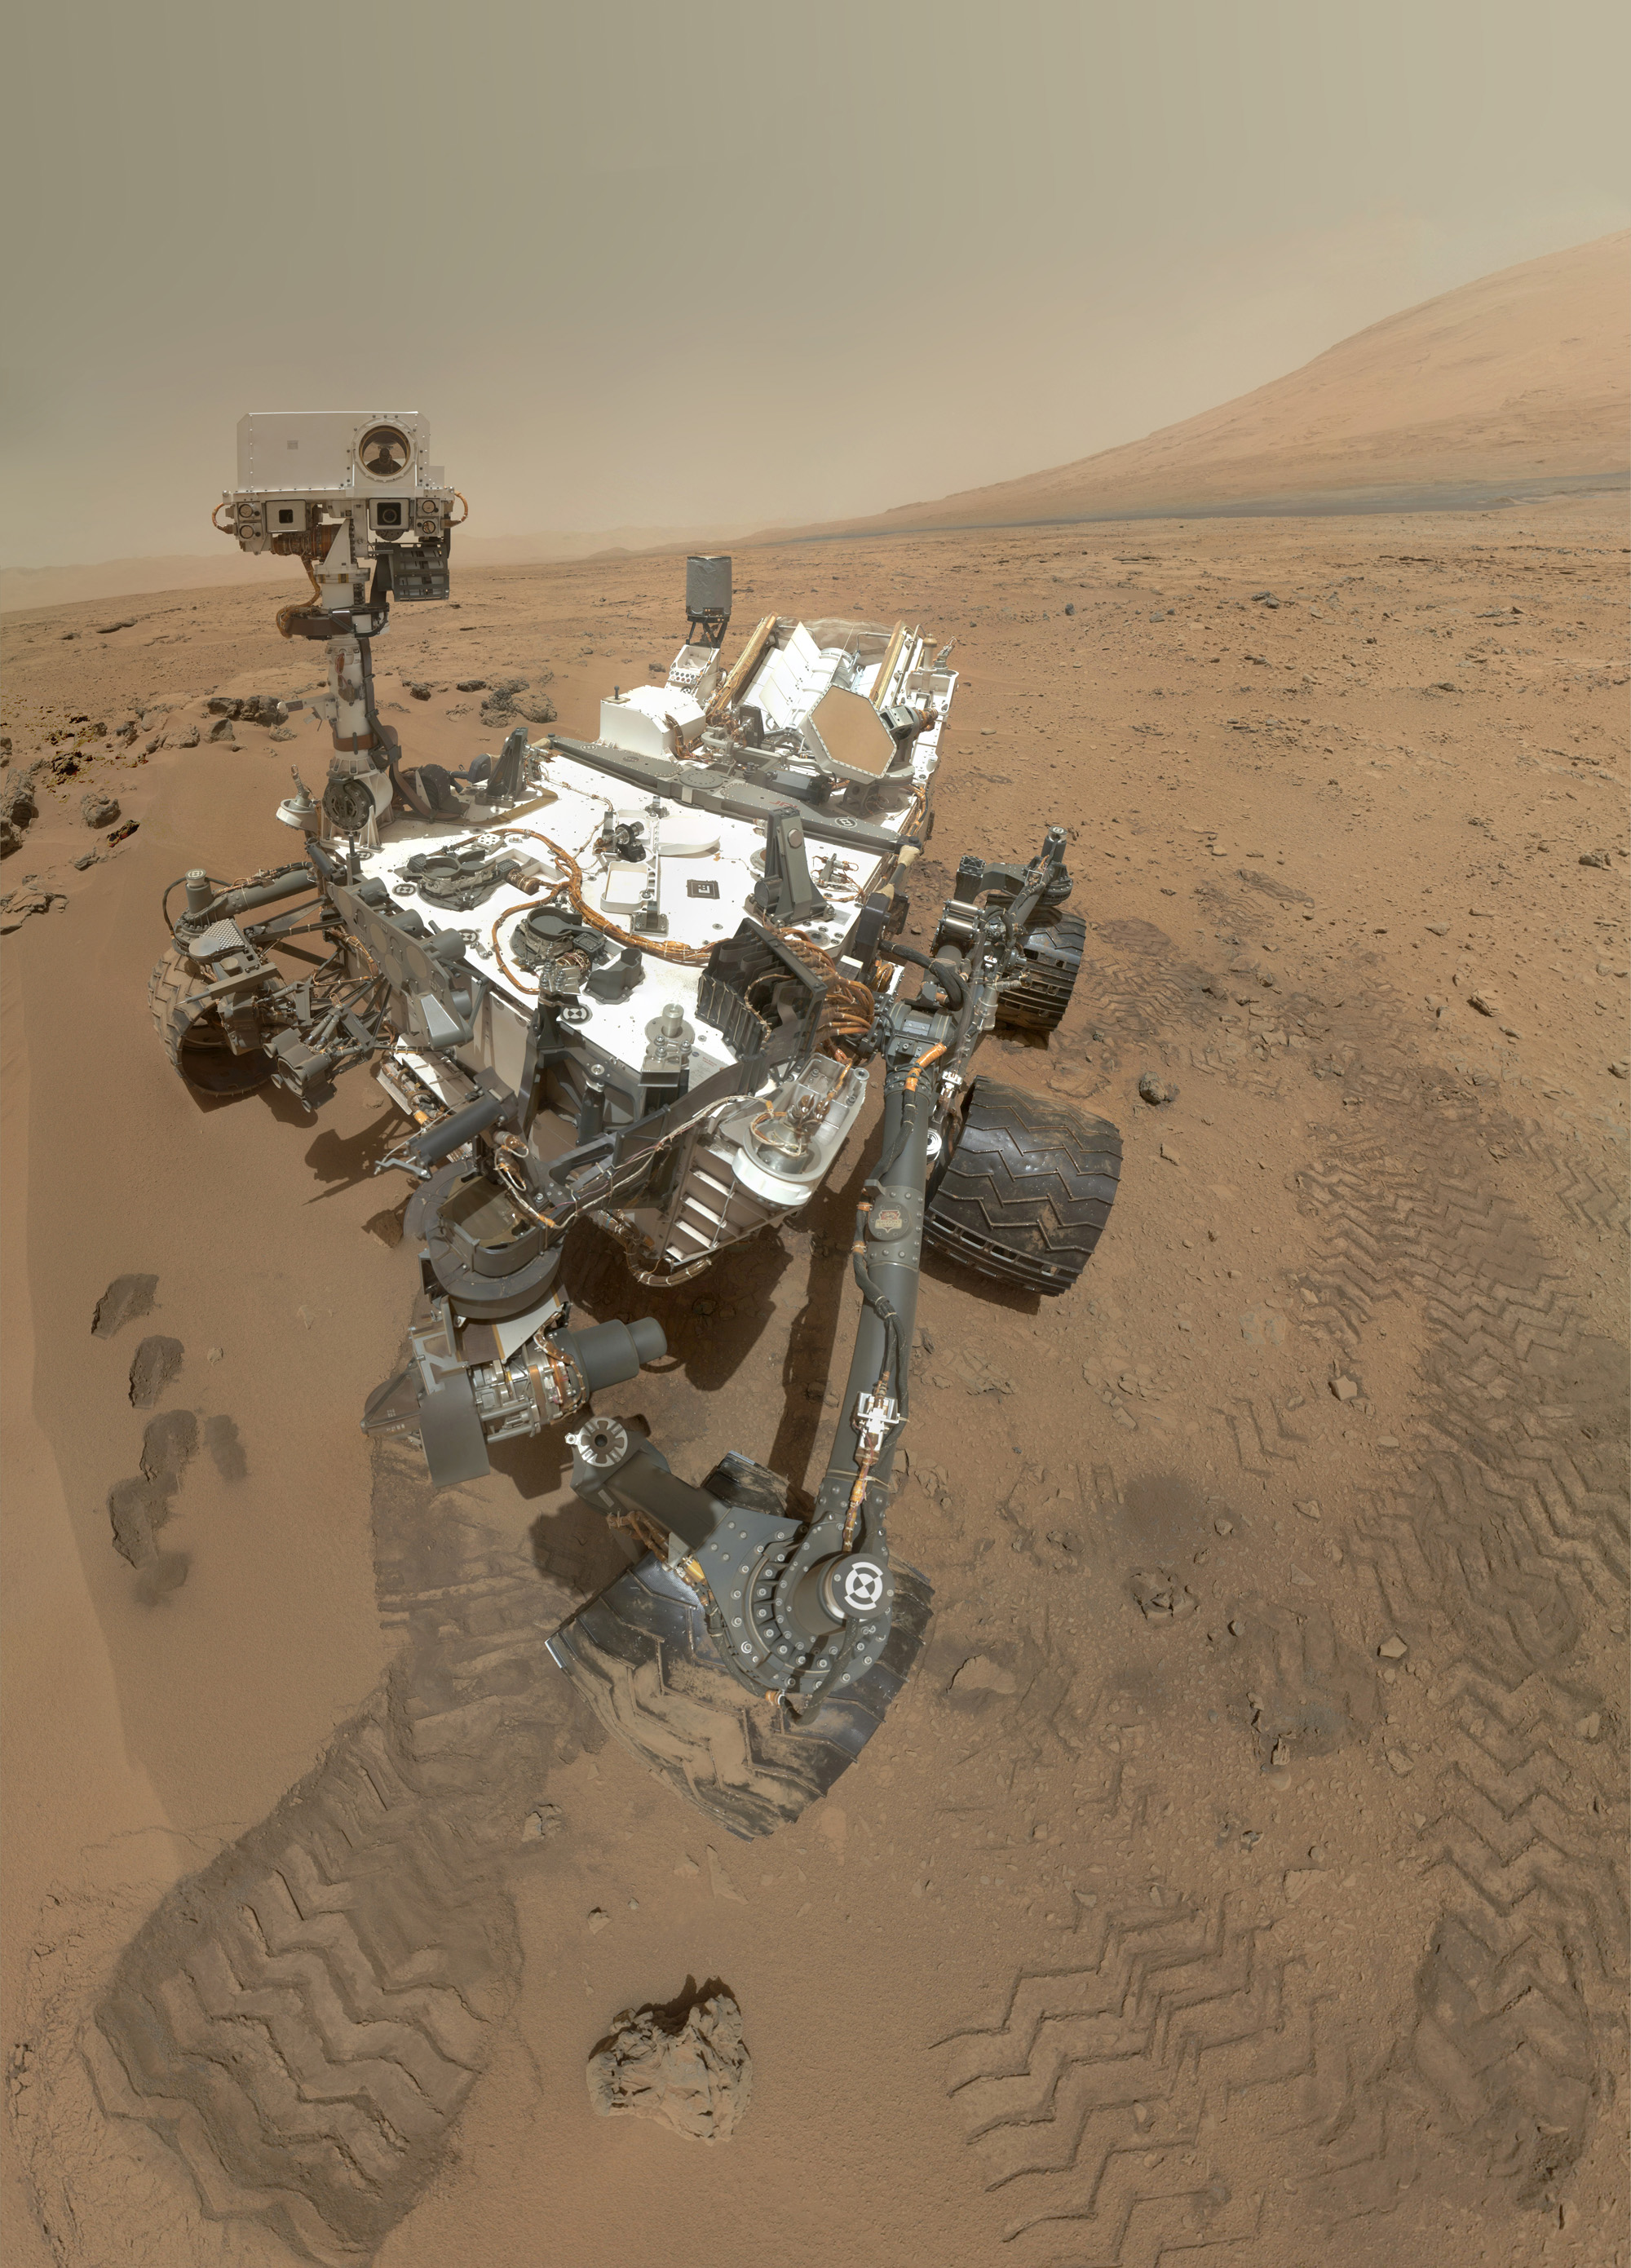 Mars Mystery: Has Curiosity Rover Made Big Discovery?